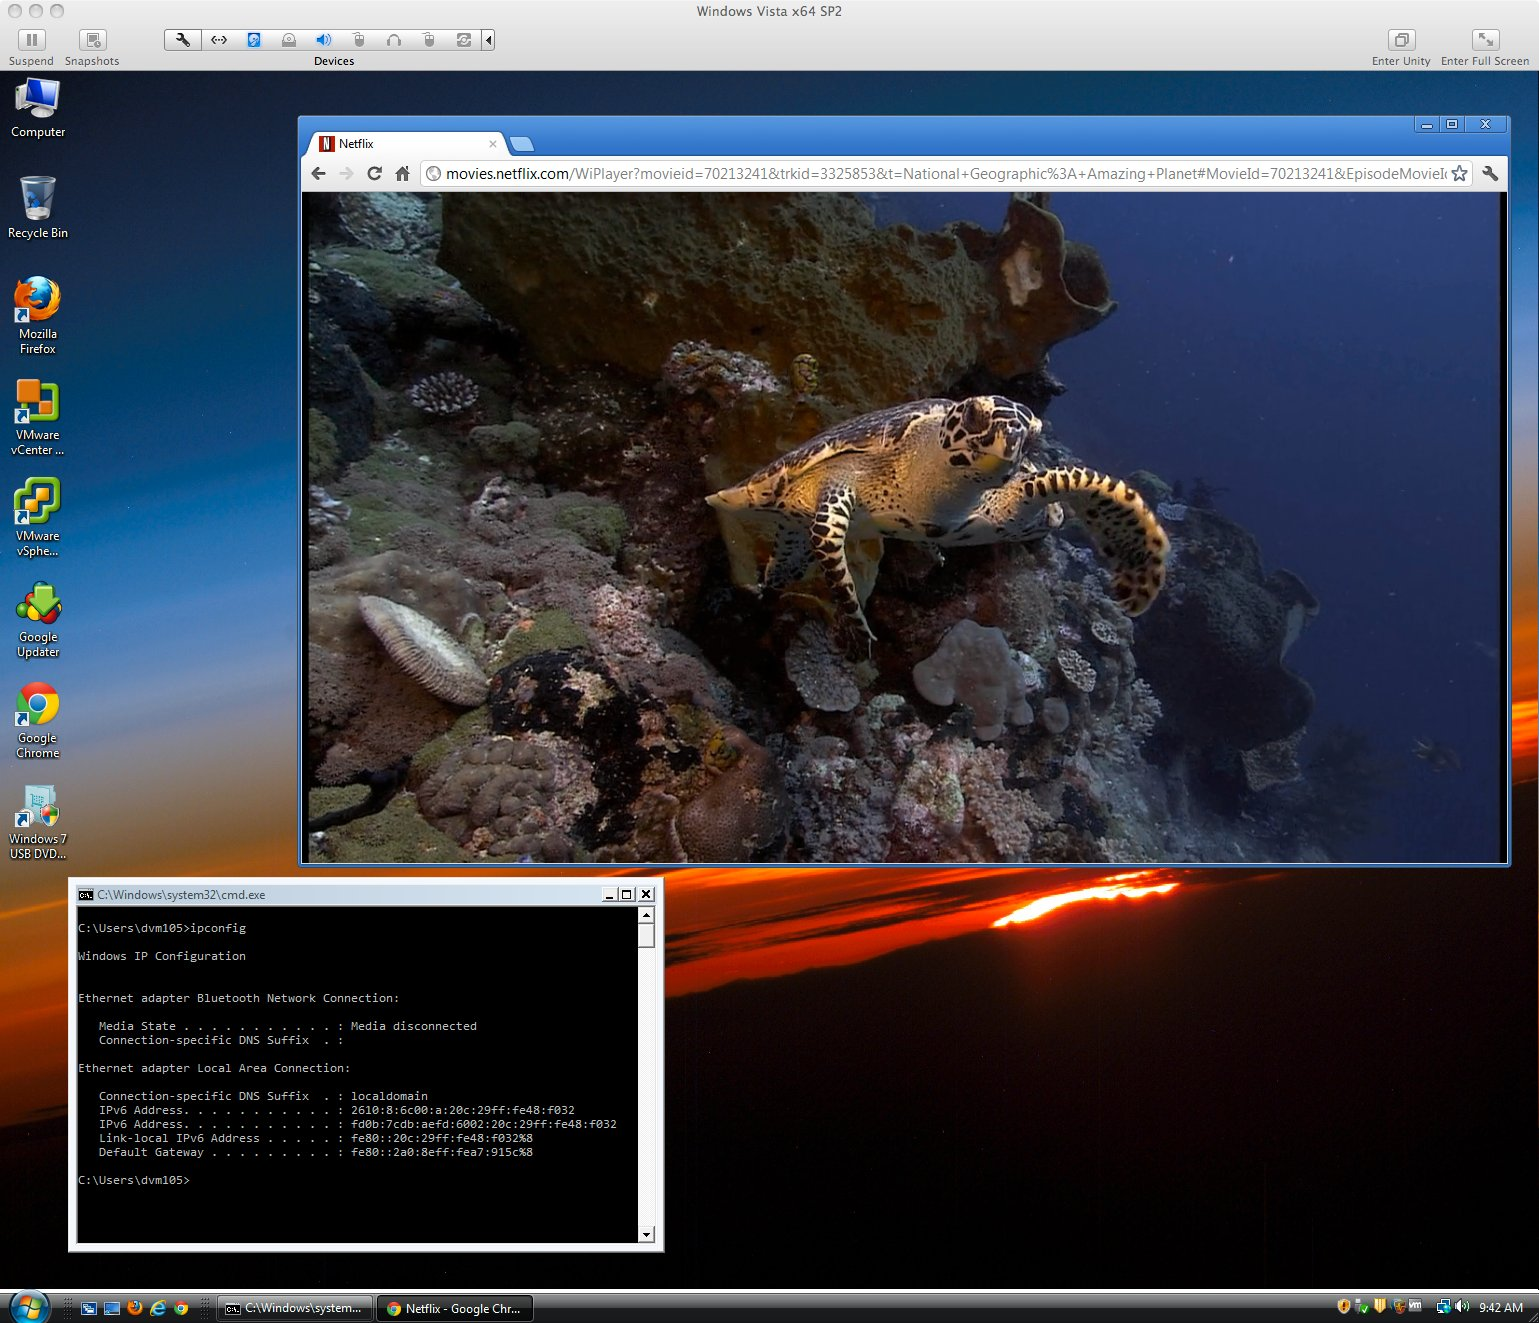 Streaming Nat Geo's Amazing Planet over IPv6